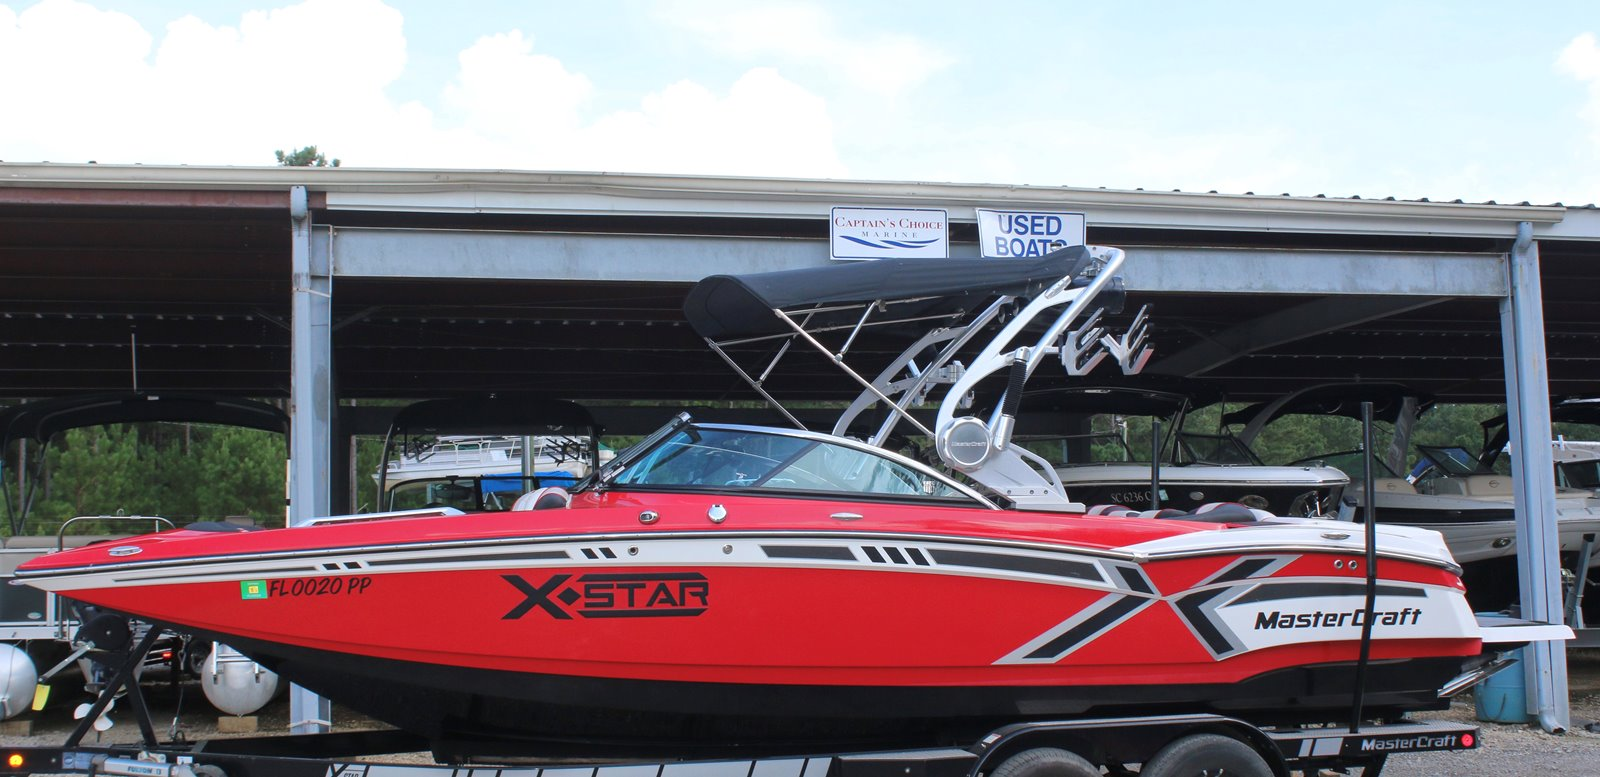 Mastercraft Star Series XStar